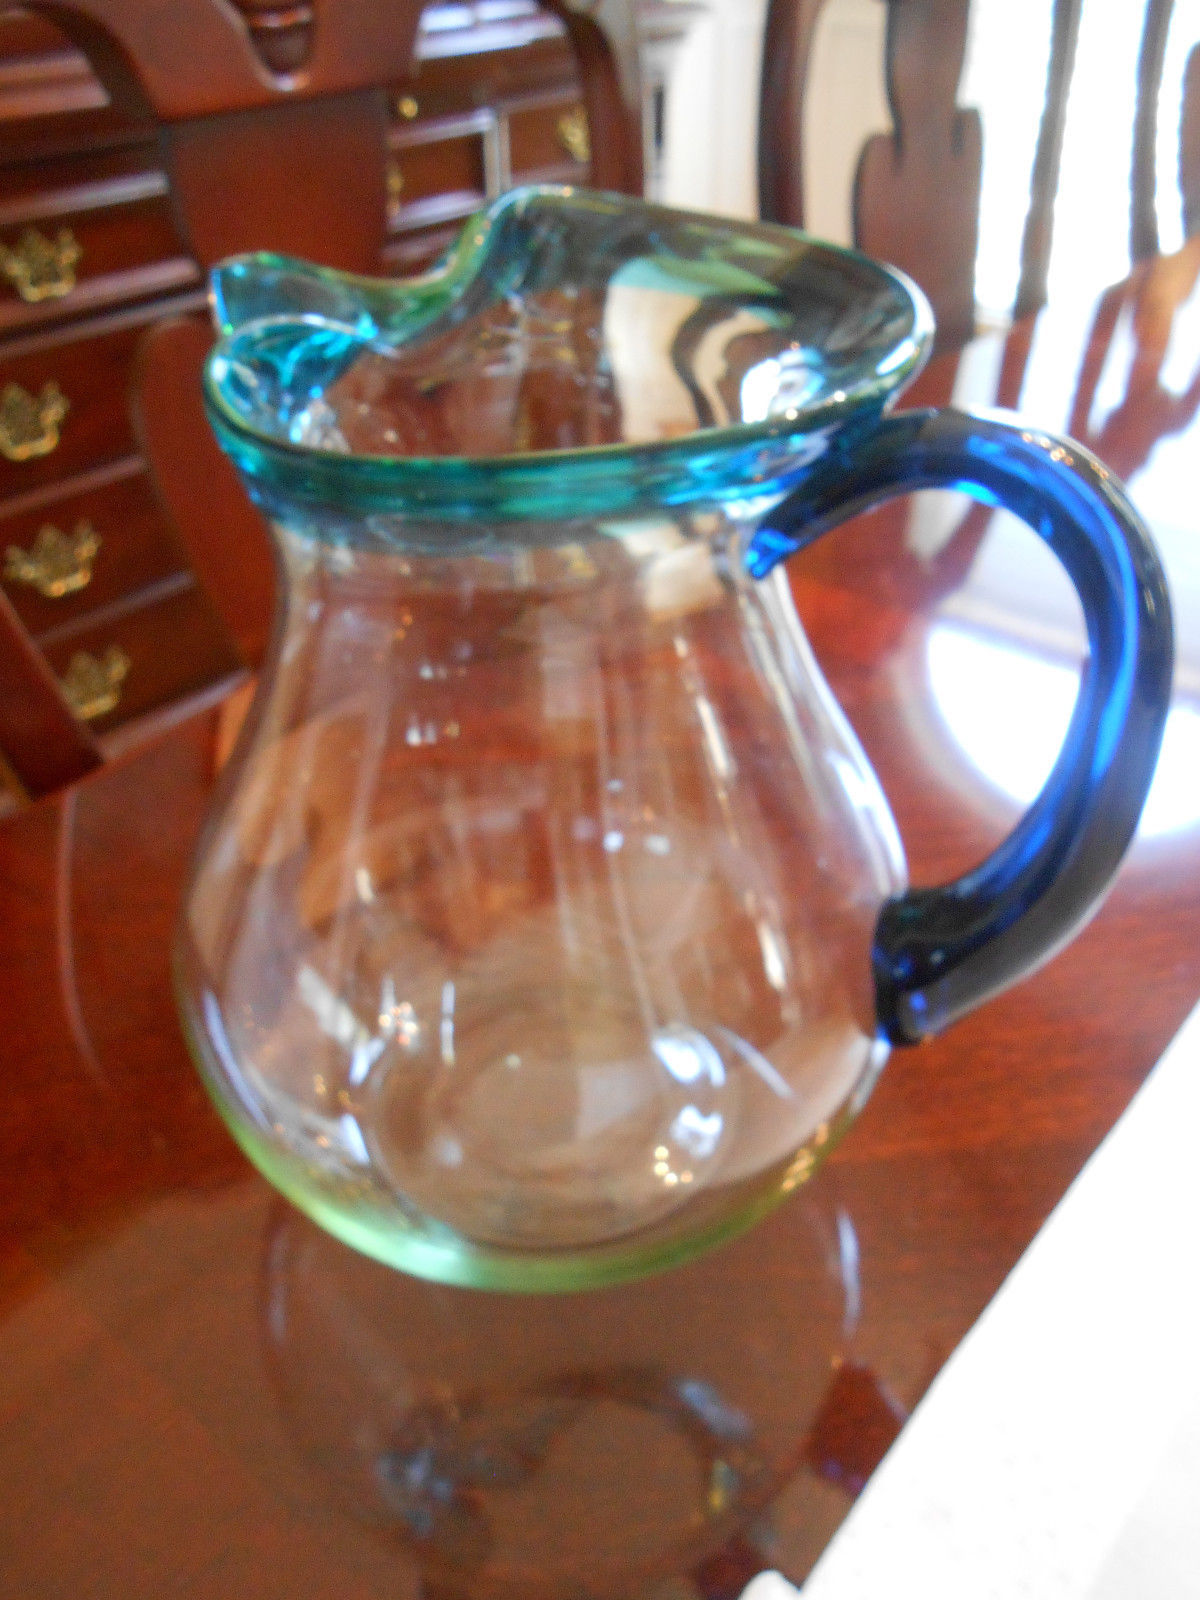 Home Essentials Hand Made Tea Juice Pitcher Aqua Teal Rim W/ Cobalt Blue Handle